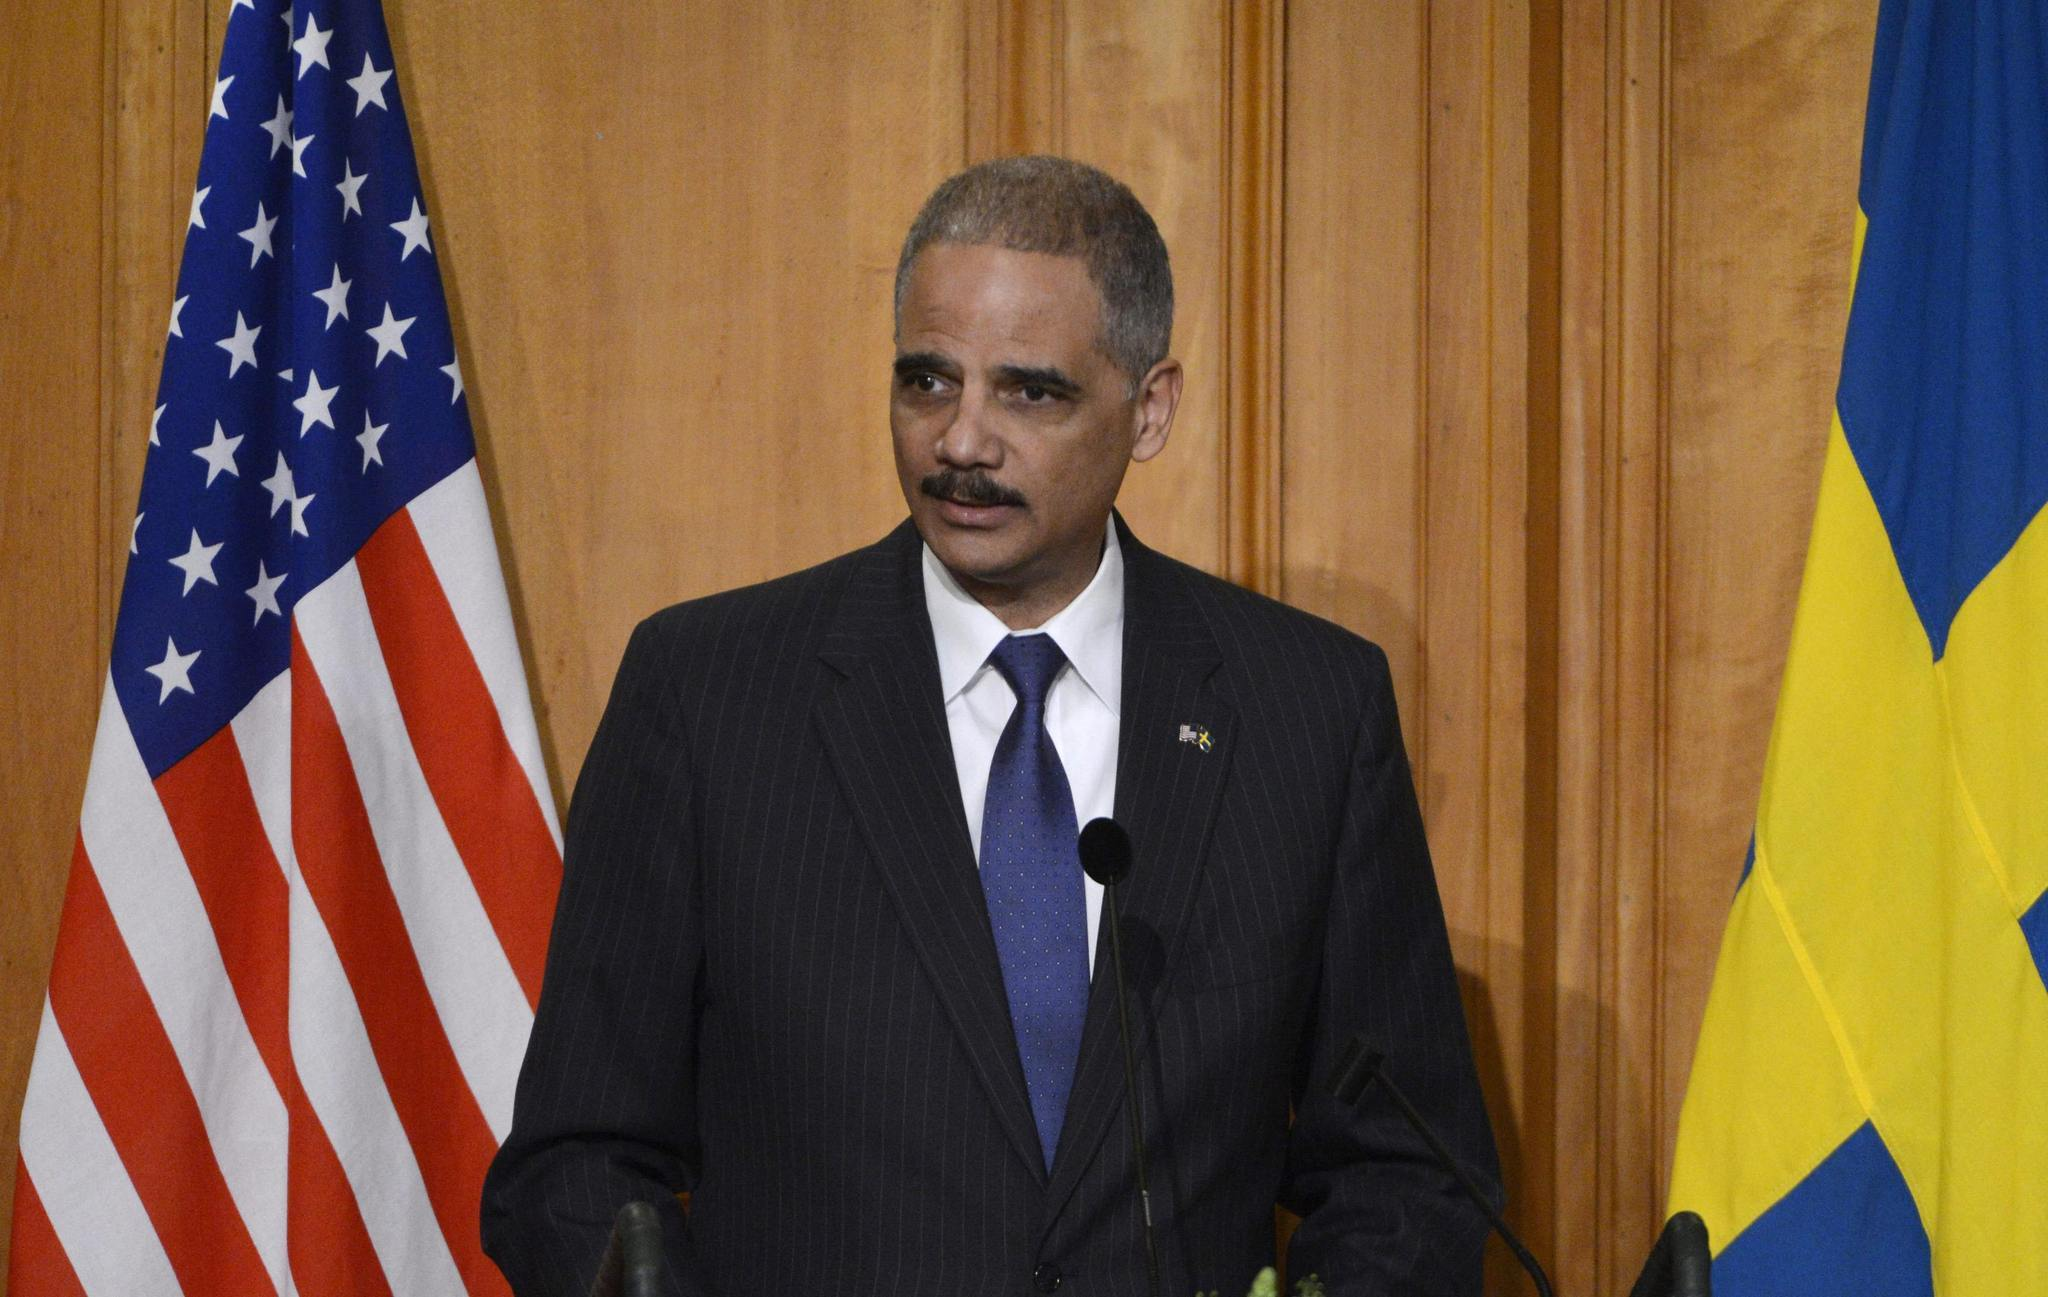 Attorney-General Eric Holder delivers a speech at the Swedish Parliament in Stockholm Feb. 4, 2014.